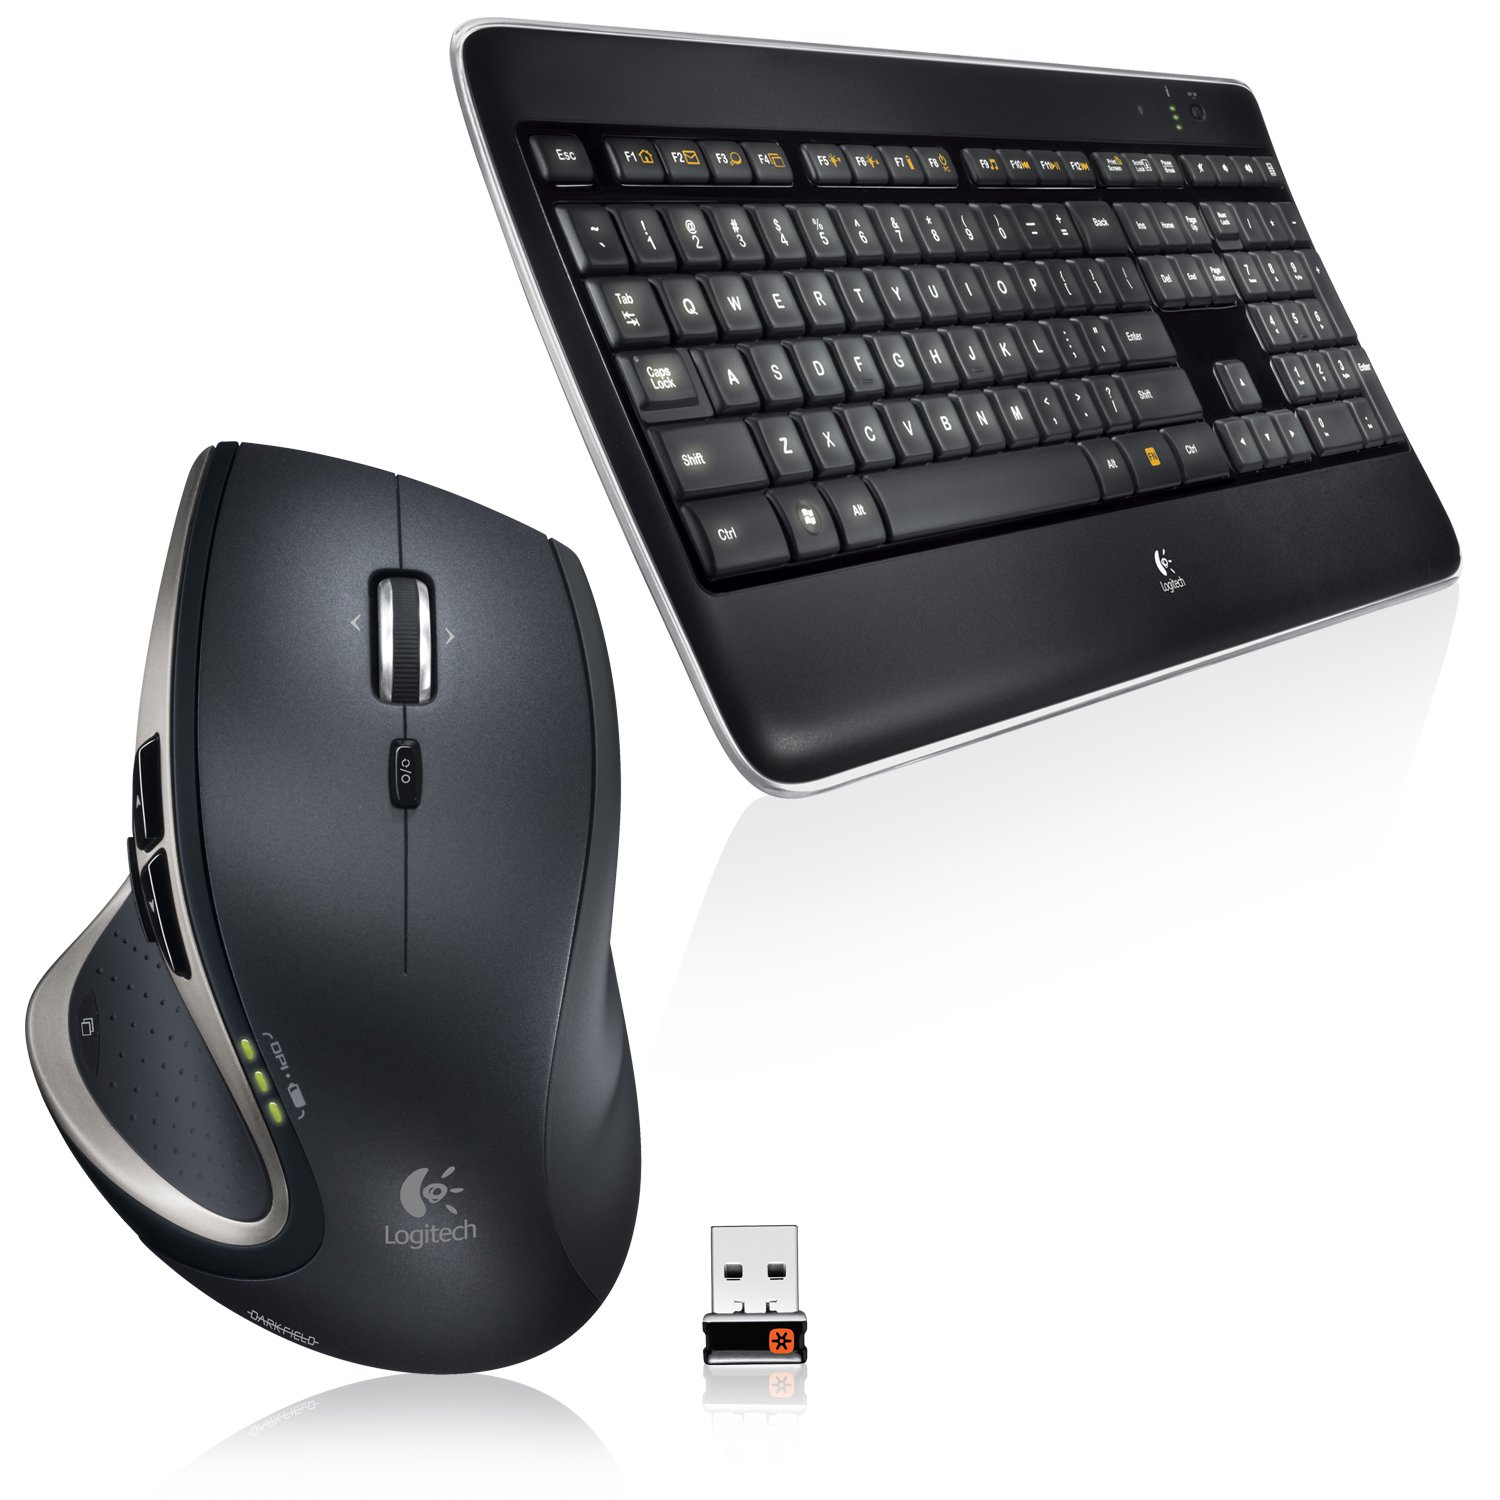 Logitech Performance Combo Mx800 Illuminated Wireless Keyboard/Mouse 1-Pack 6